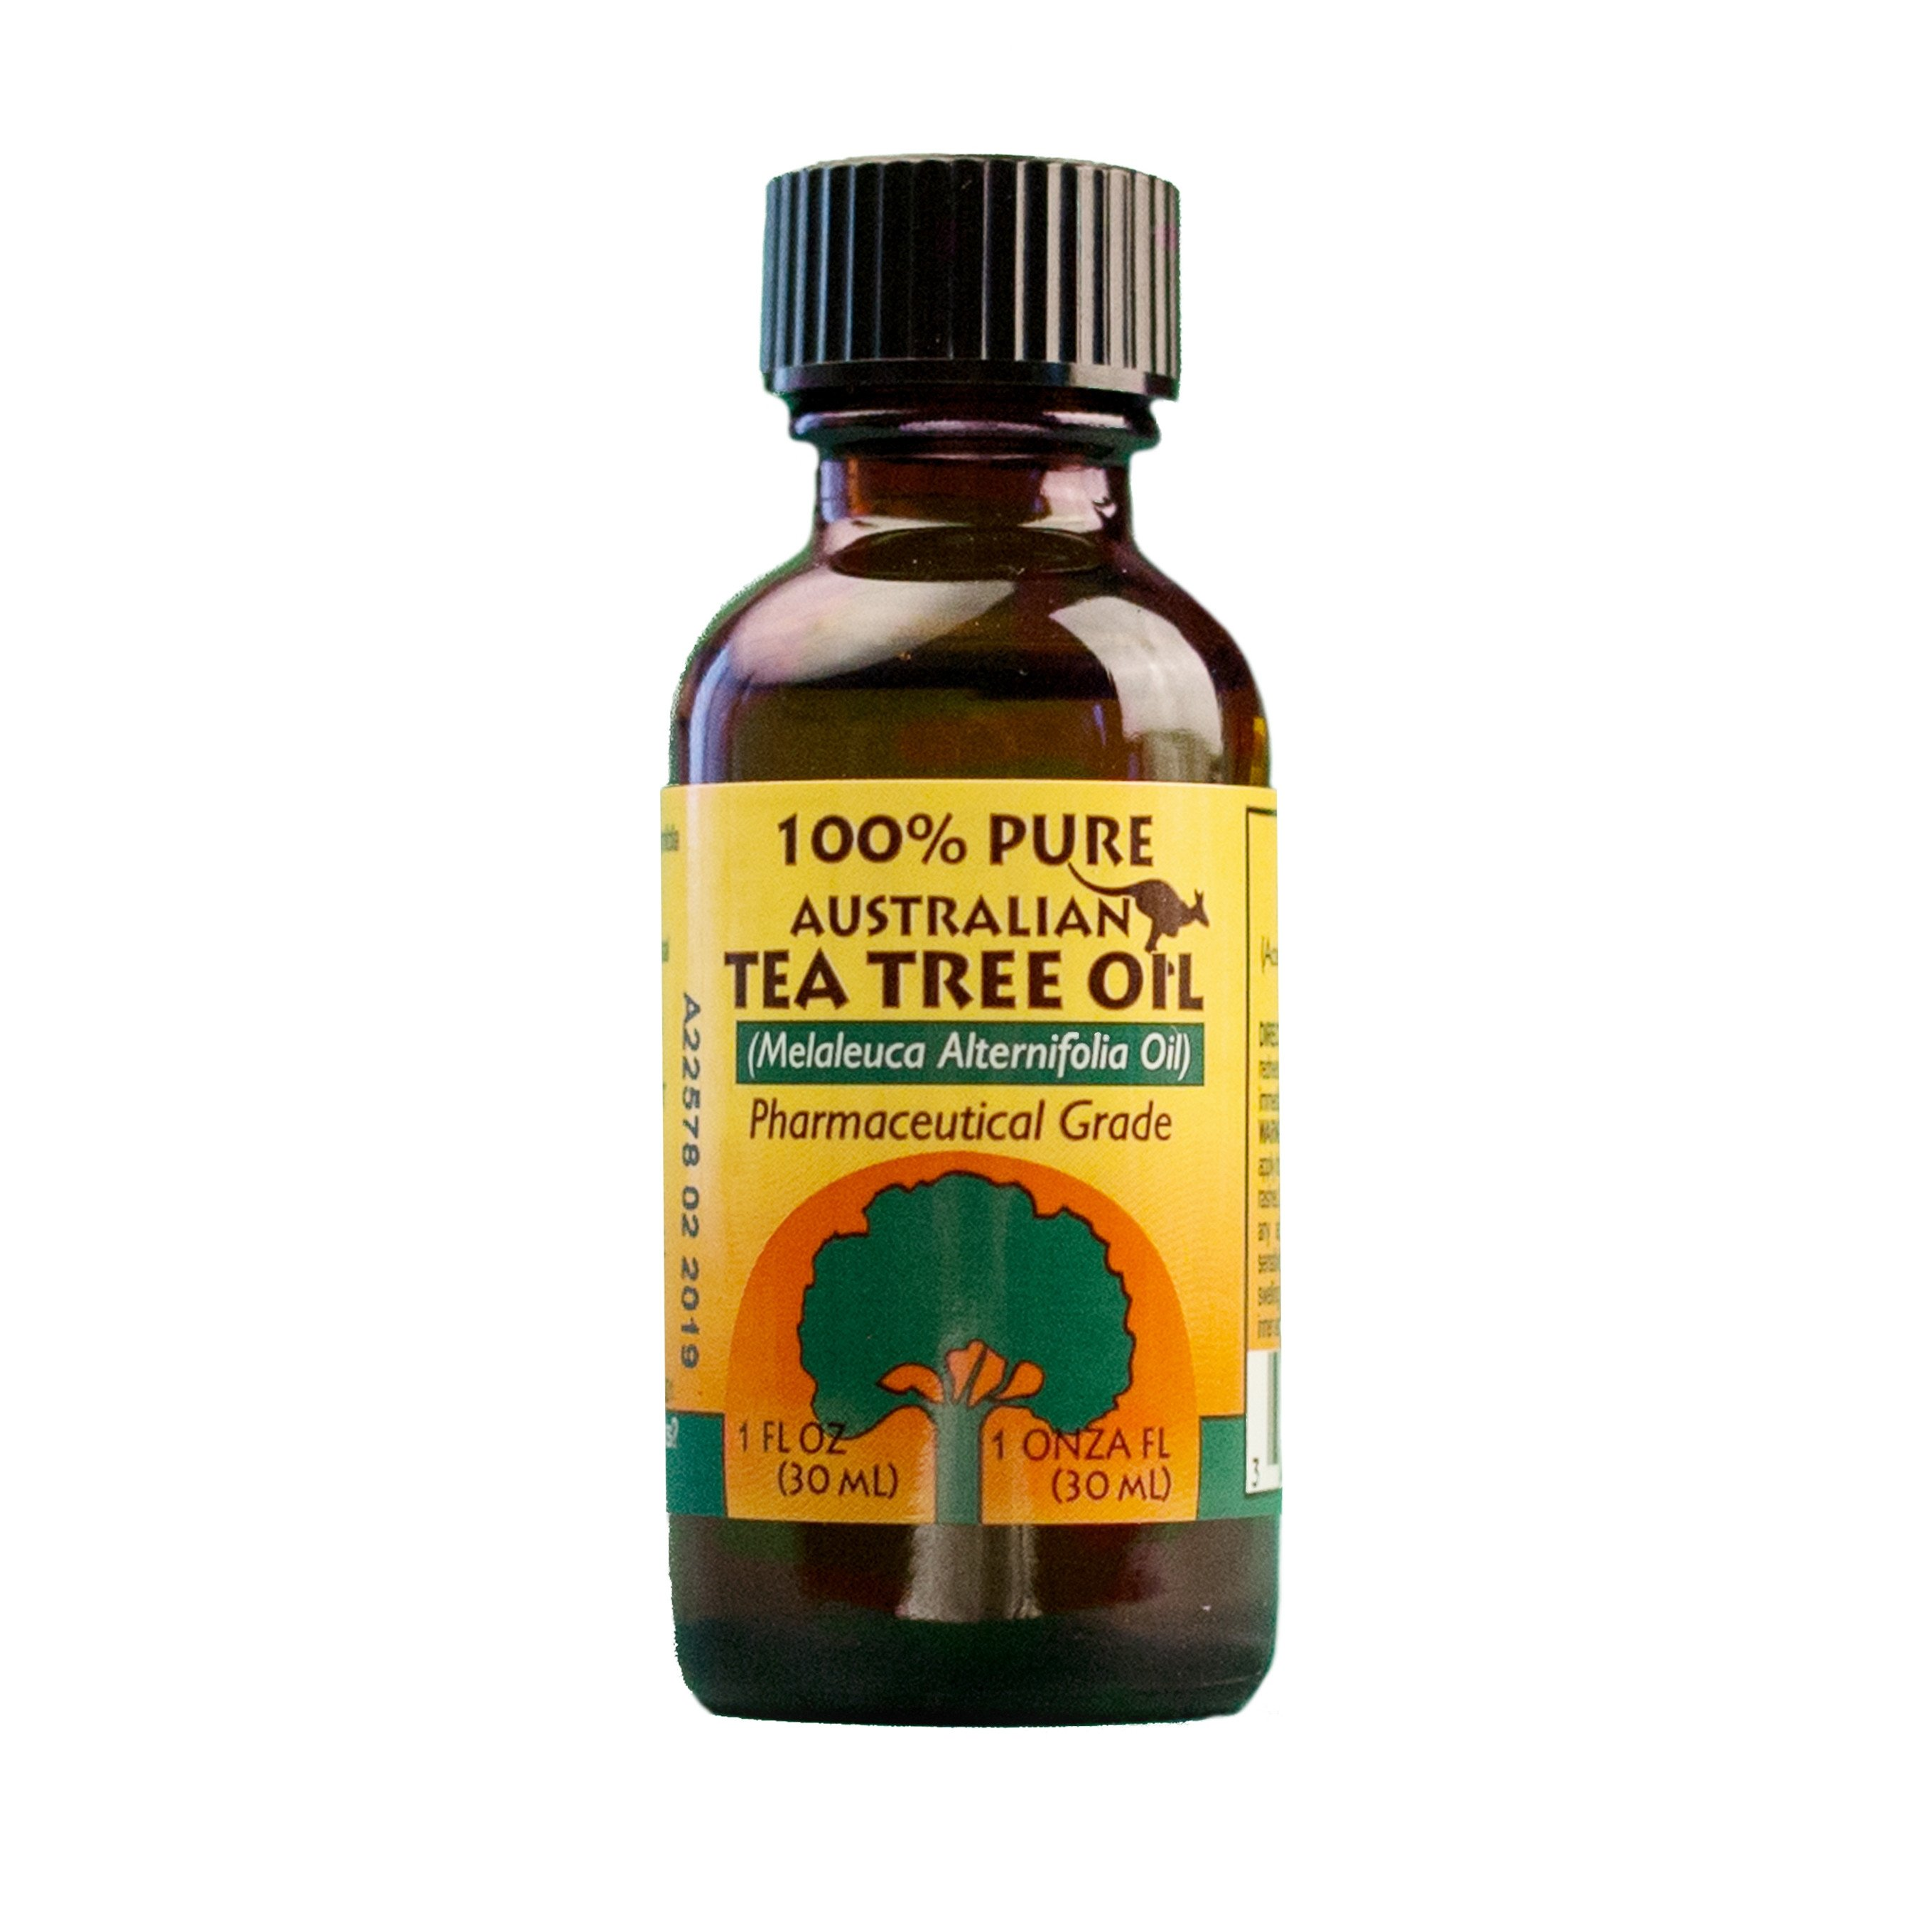 Humco 100% Pure Australian Tea Tree Oil, 1 oz